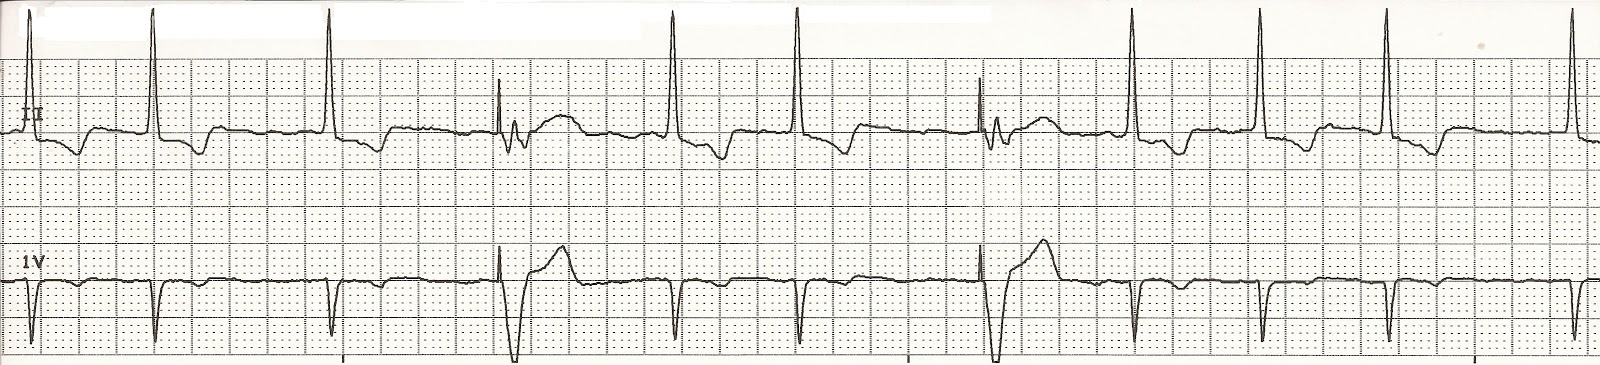 Single chamber pacemaker atrial fibrillation